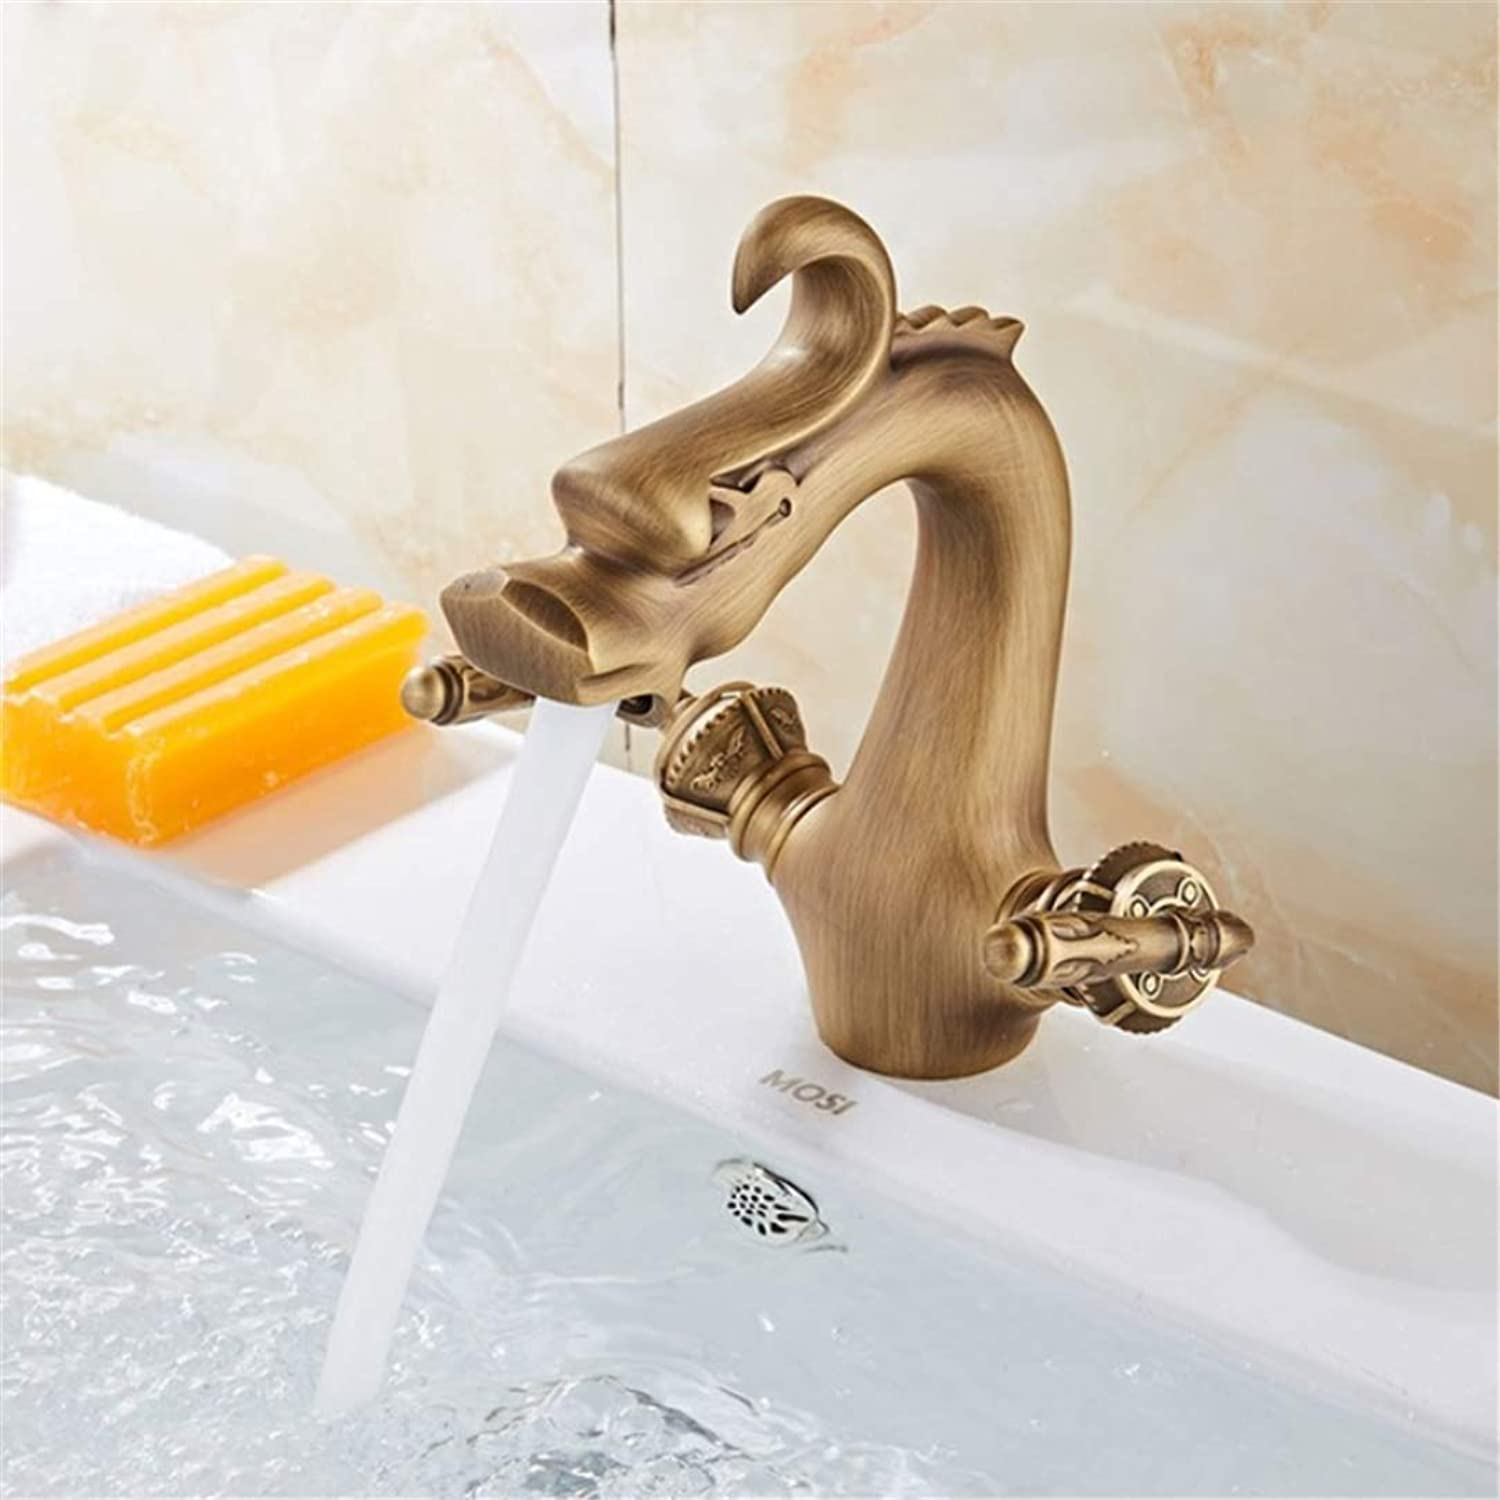 Basin Faucets Brass Dragon Style Bathroom Sink Faucet Dual Handle Deck Mount Bath Washbasin Hot Cold Mixer Water Tap WC Taps